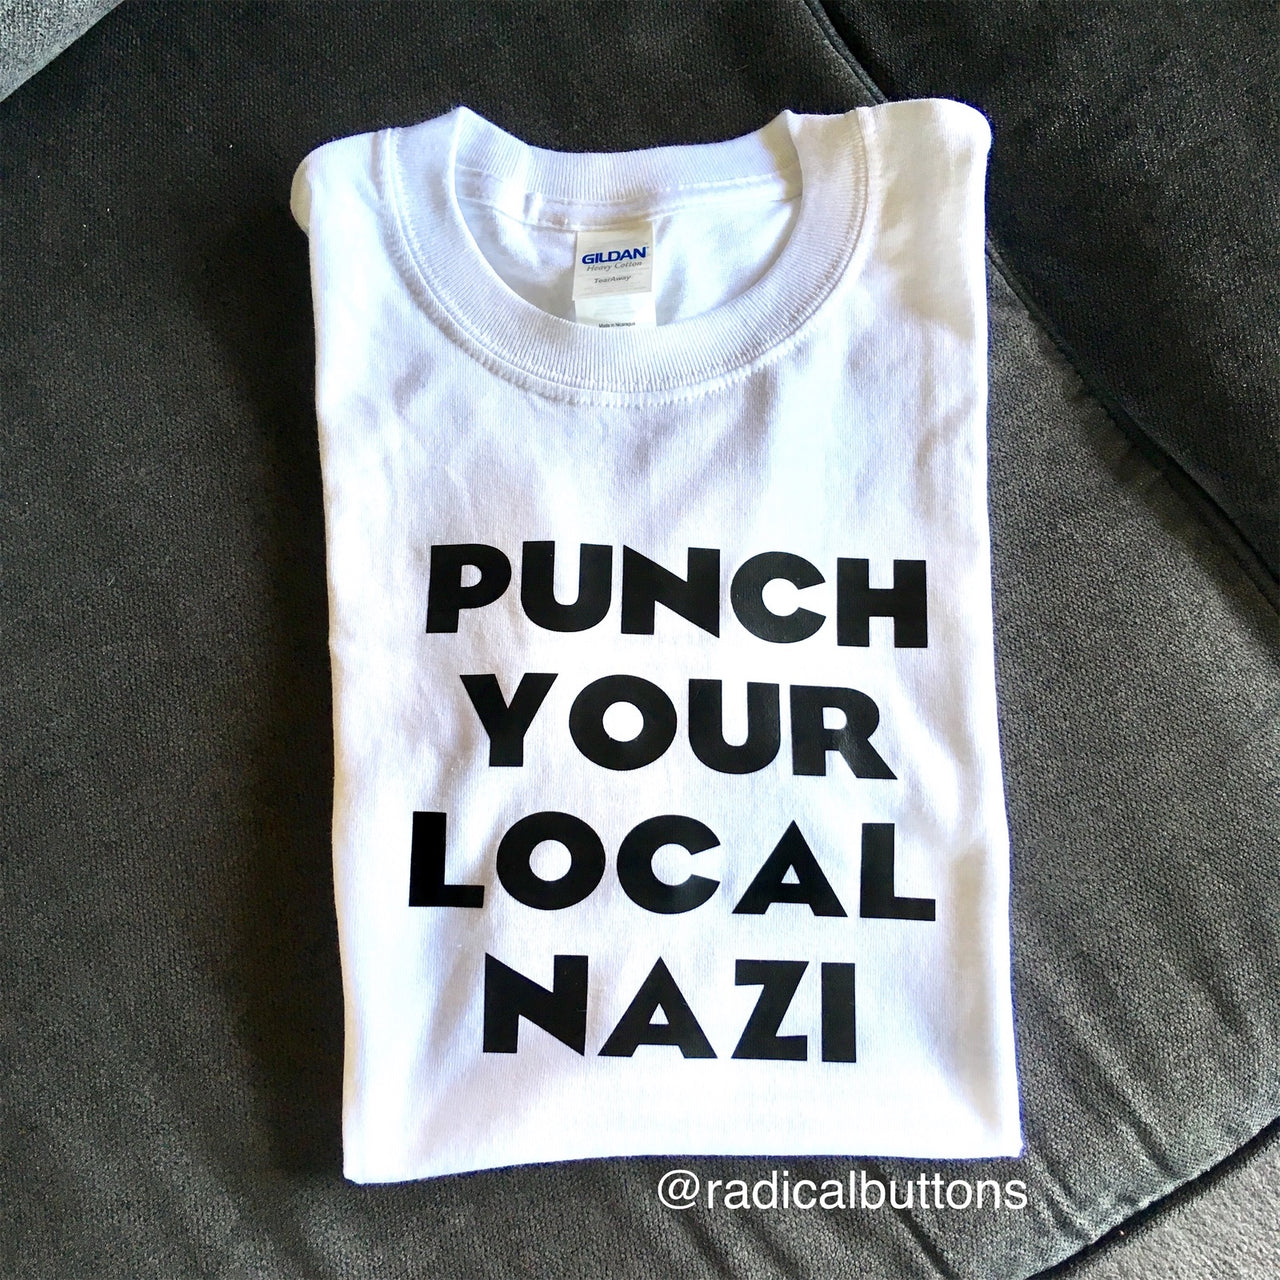 Punch your local Nazi (white unisex tee) - Radical Buttons